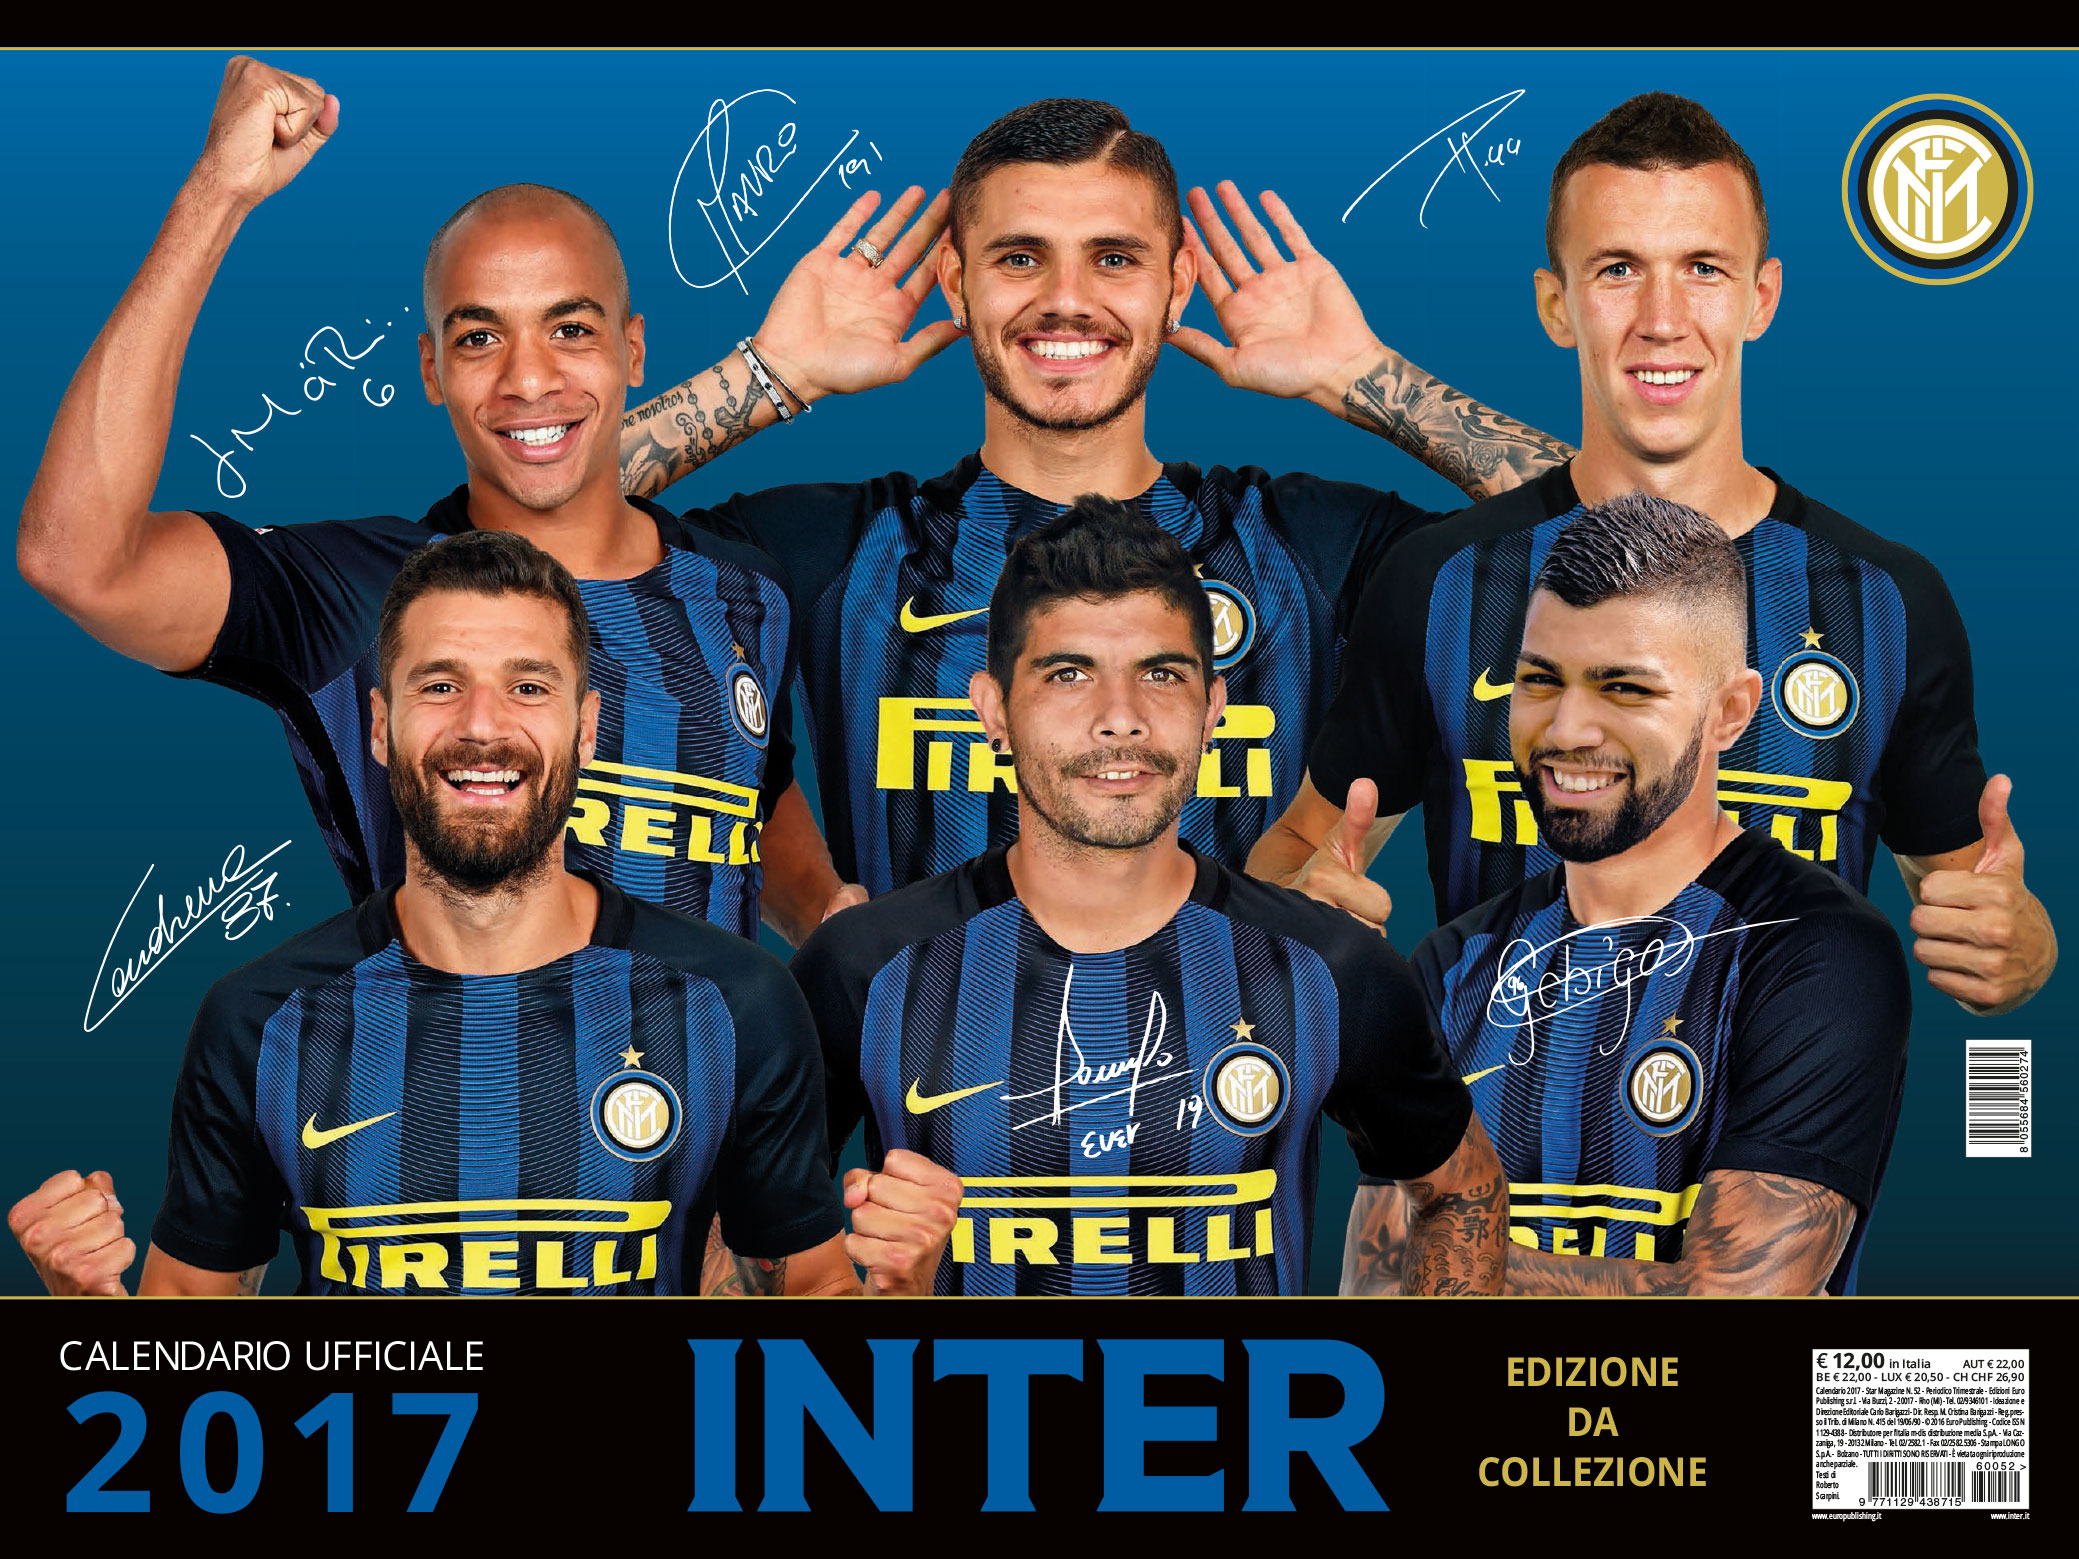 inter_orizzontale_2017